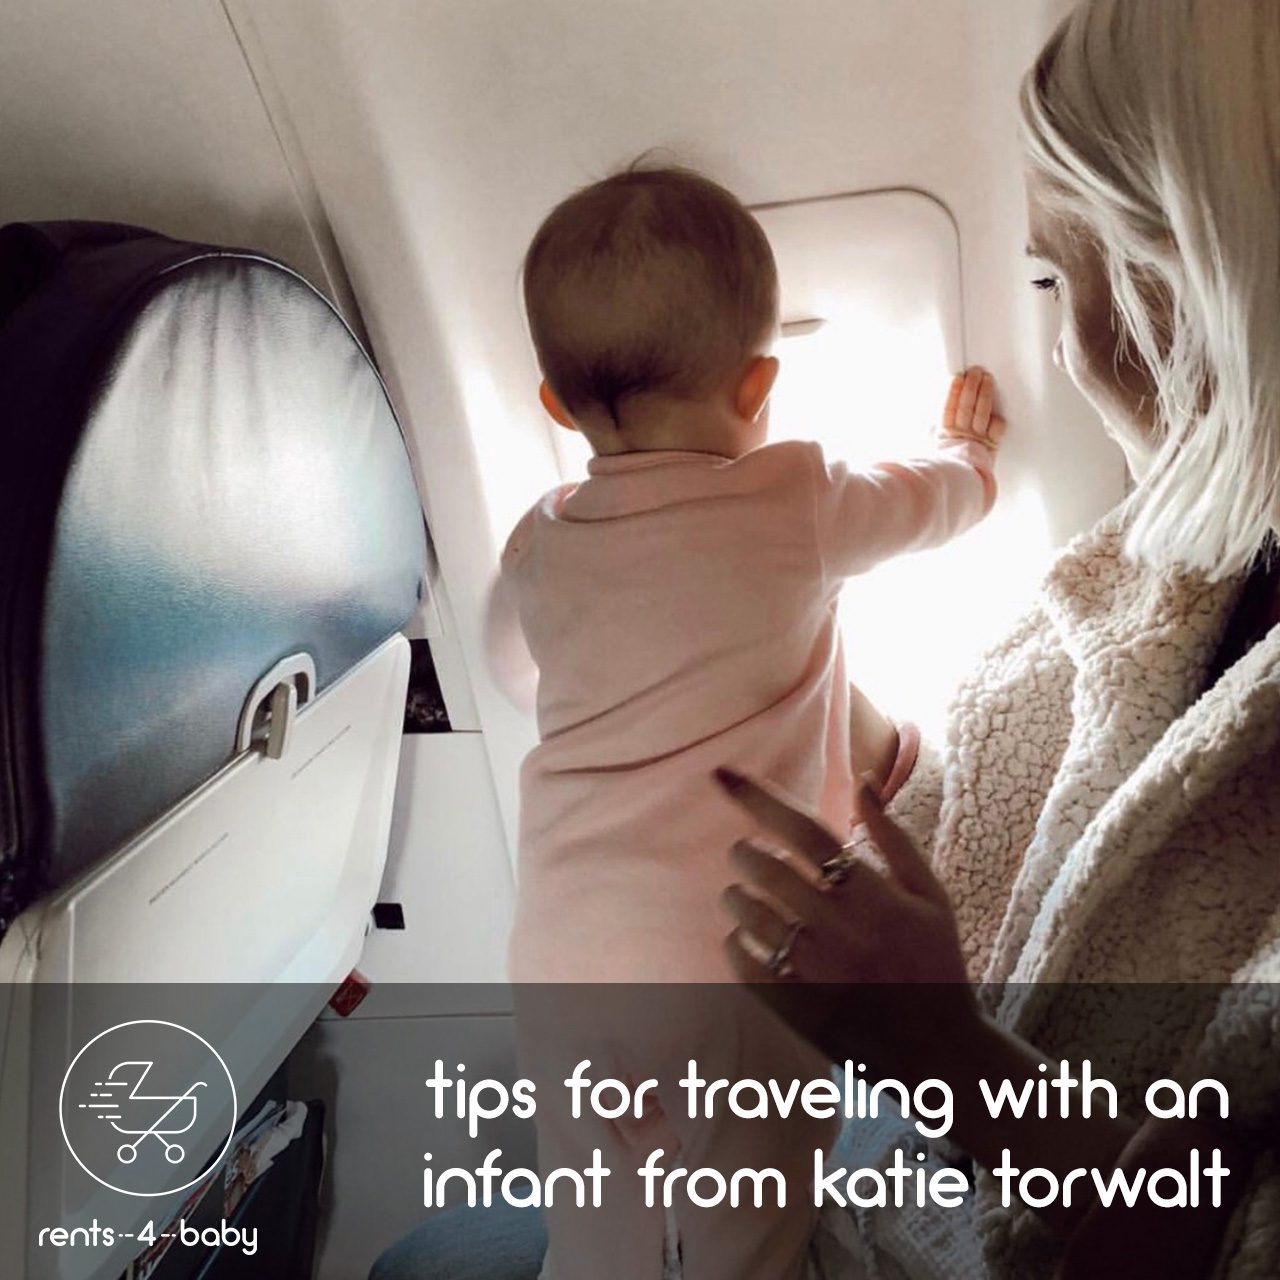 TIPS FOR TRAVELING WITH AN INFANT FROM KATIE TORWALT